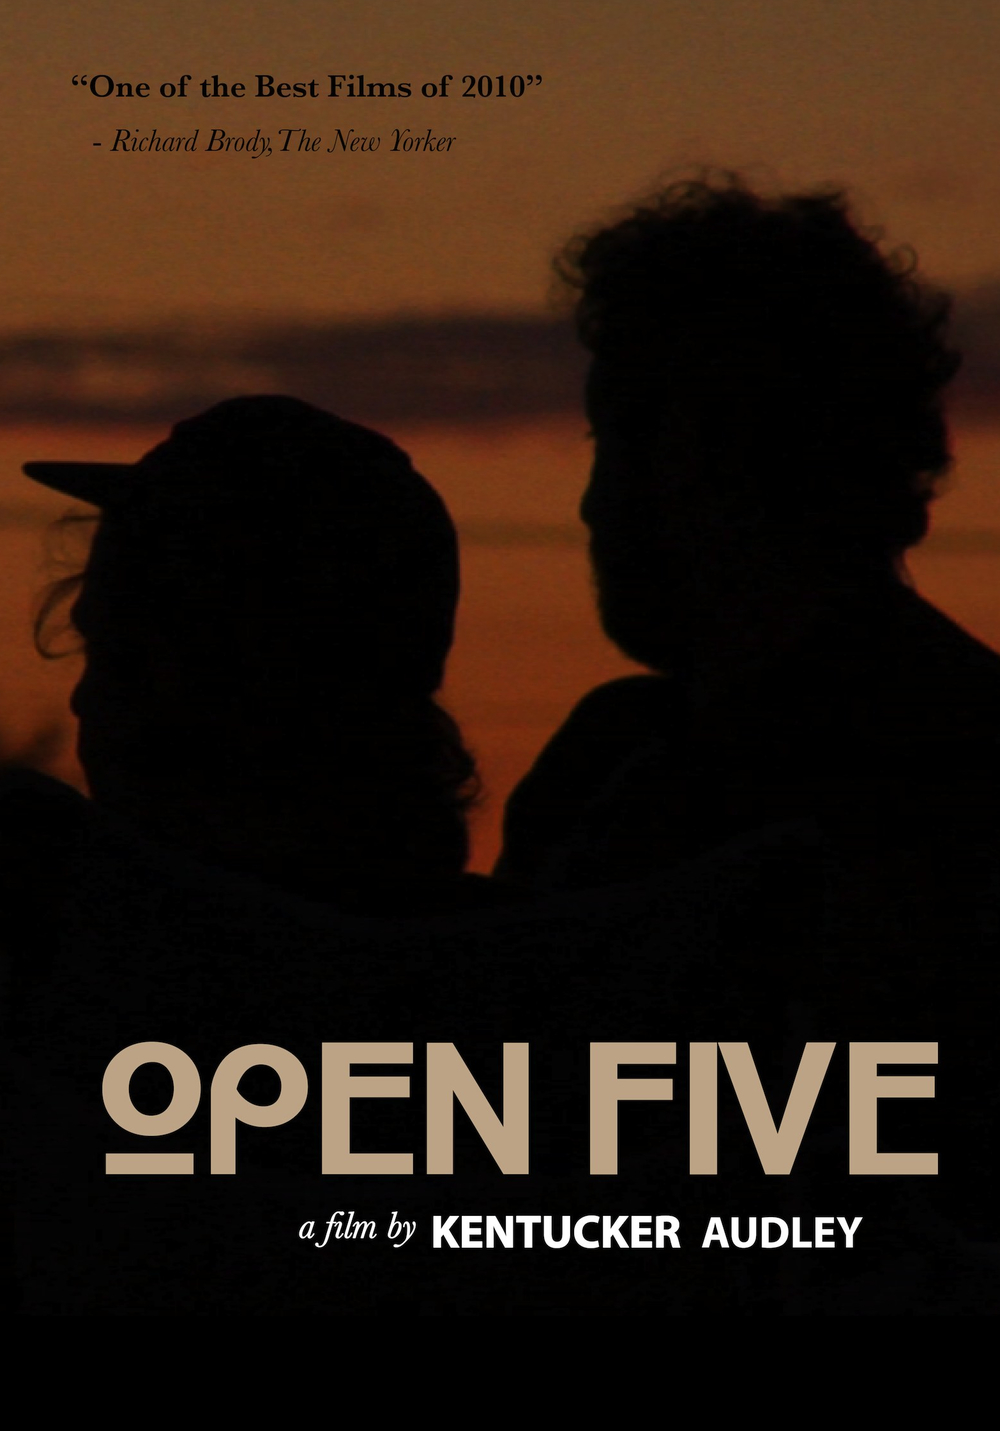 OPEN FIVE DVD COVER cropped front.jpg